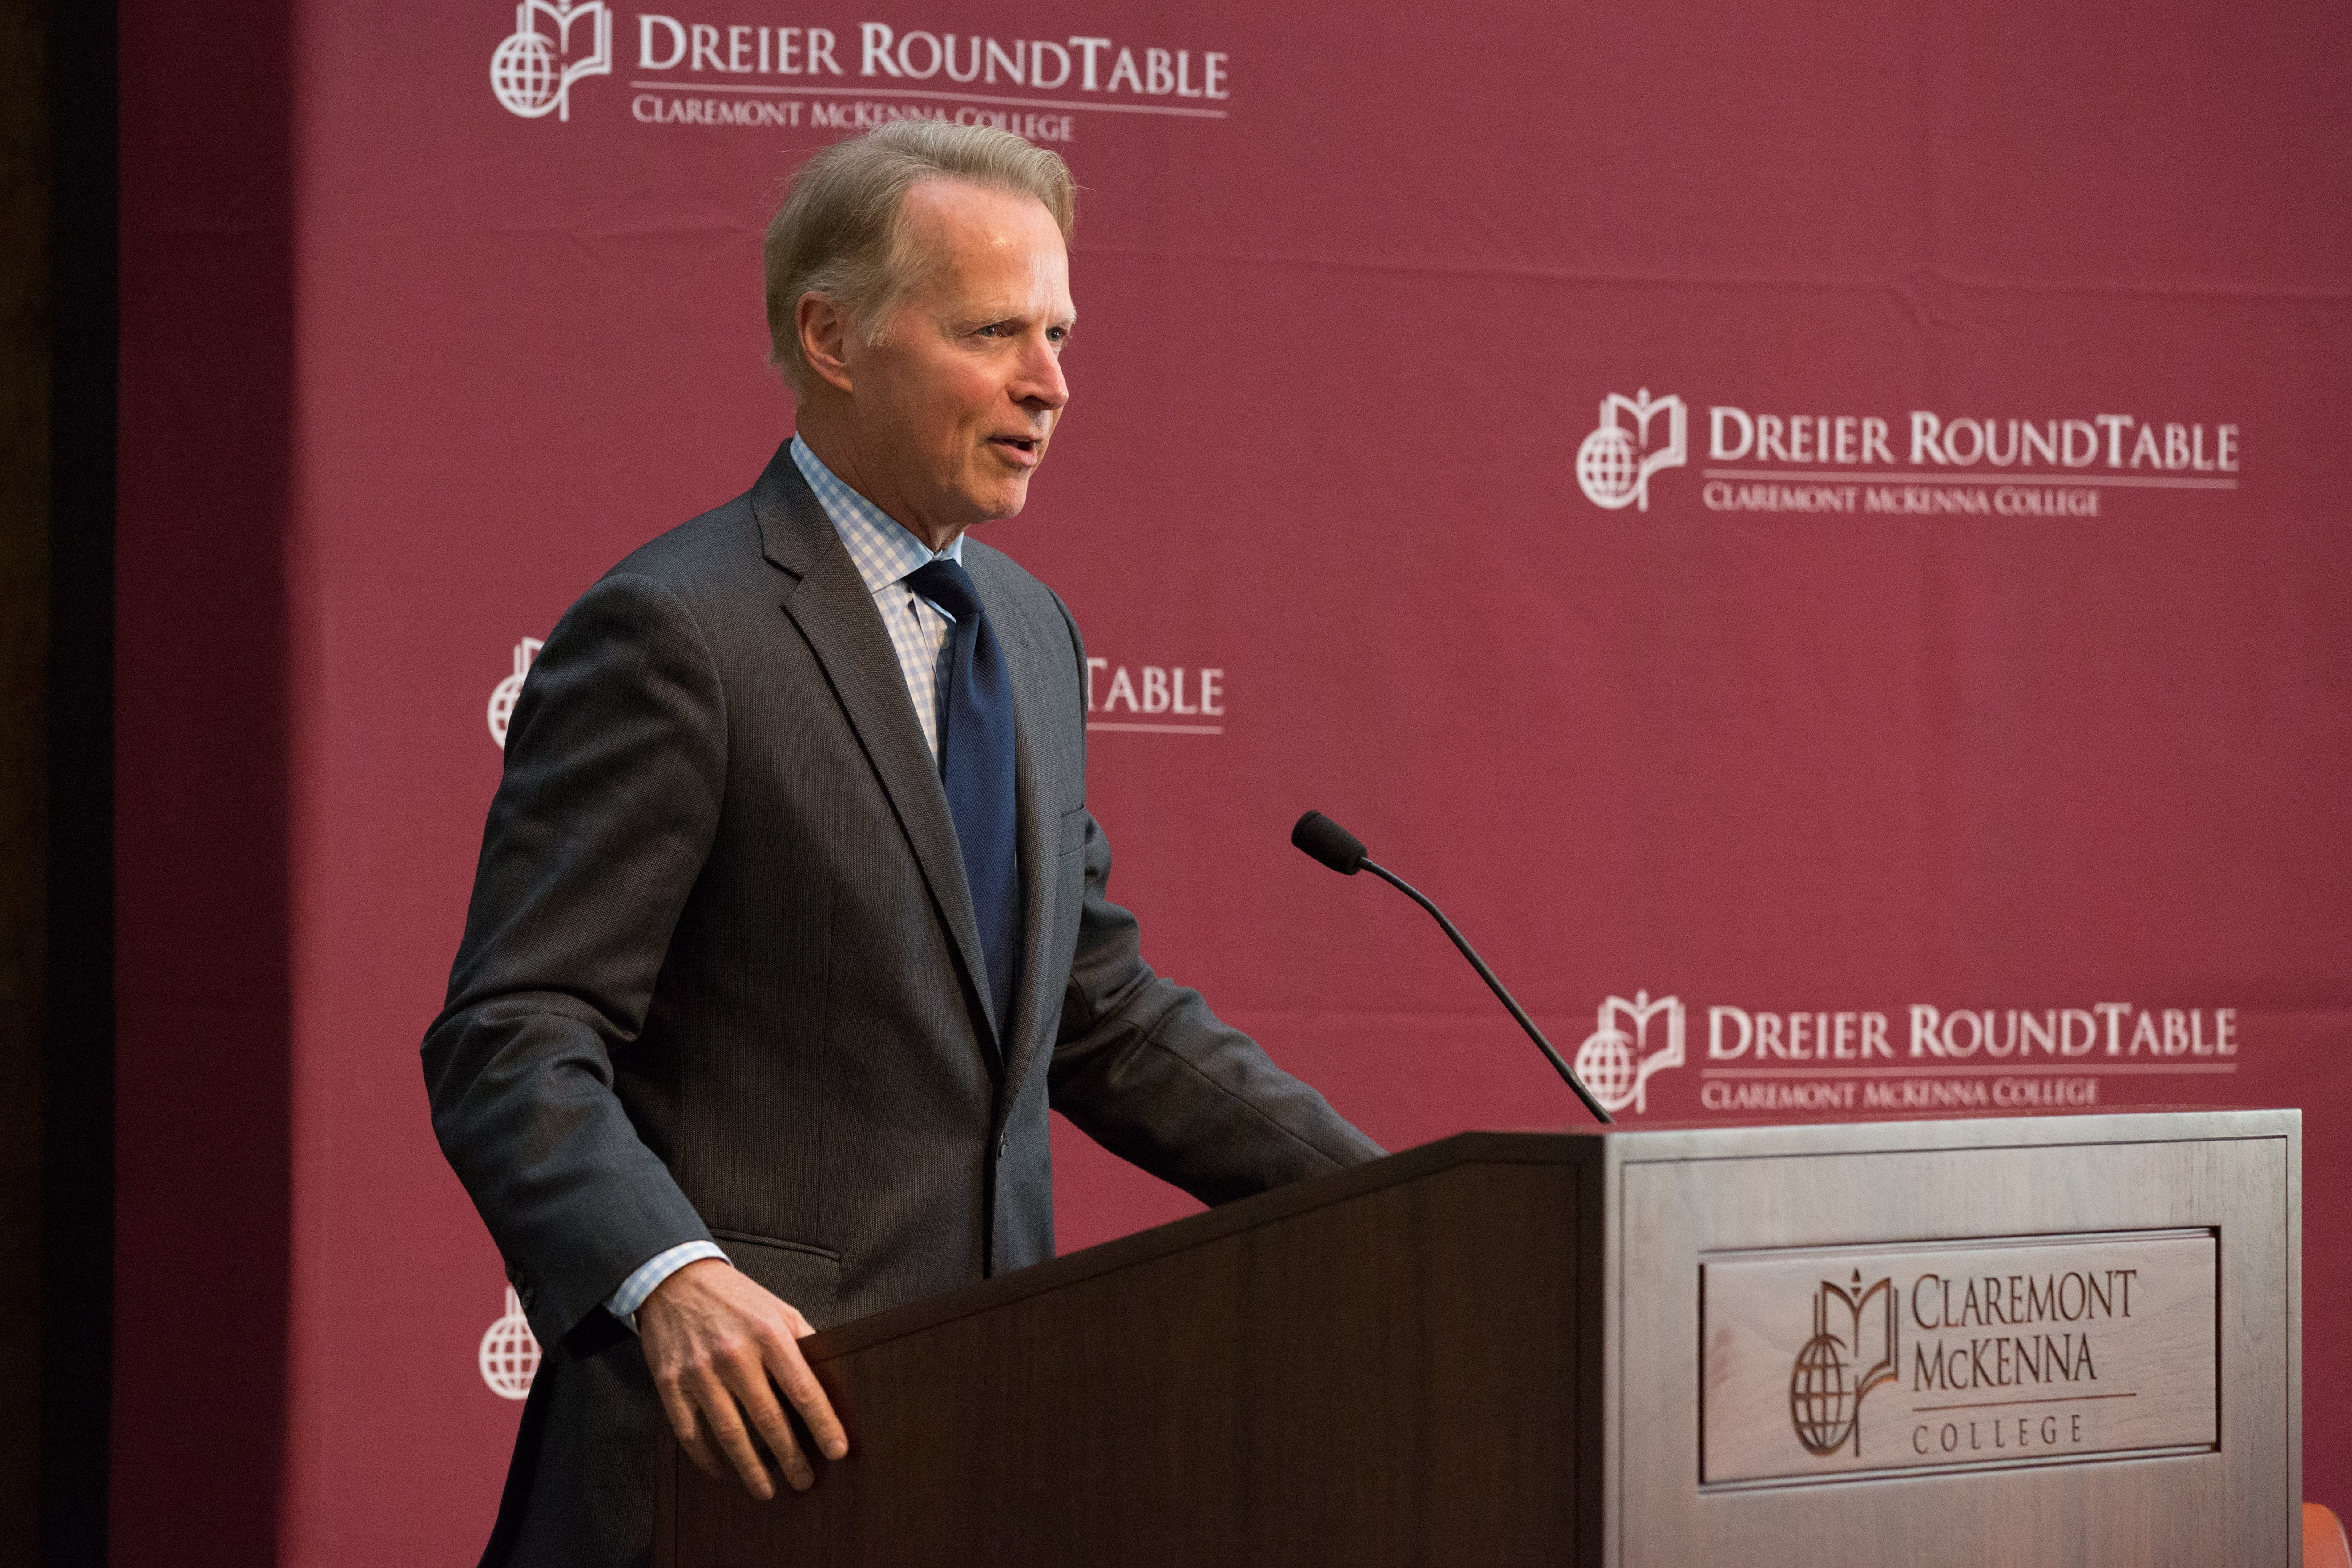 David Dreier speaking about the inauguration of the Dreier Roundtable.